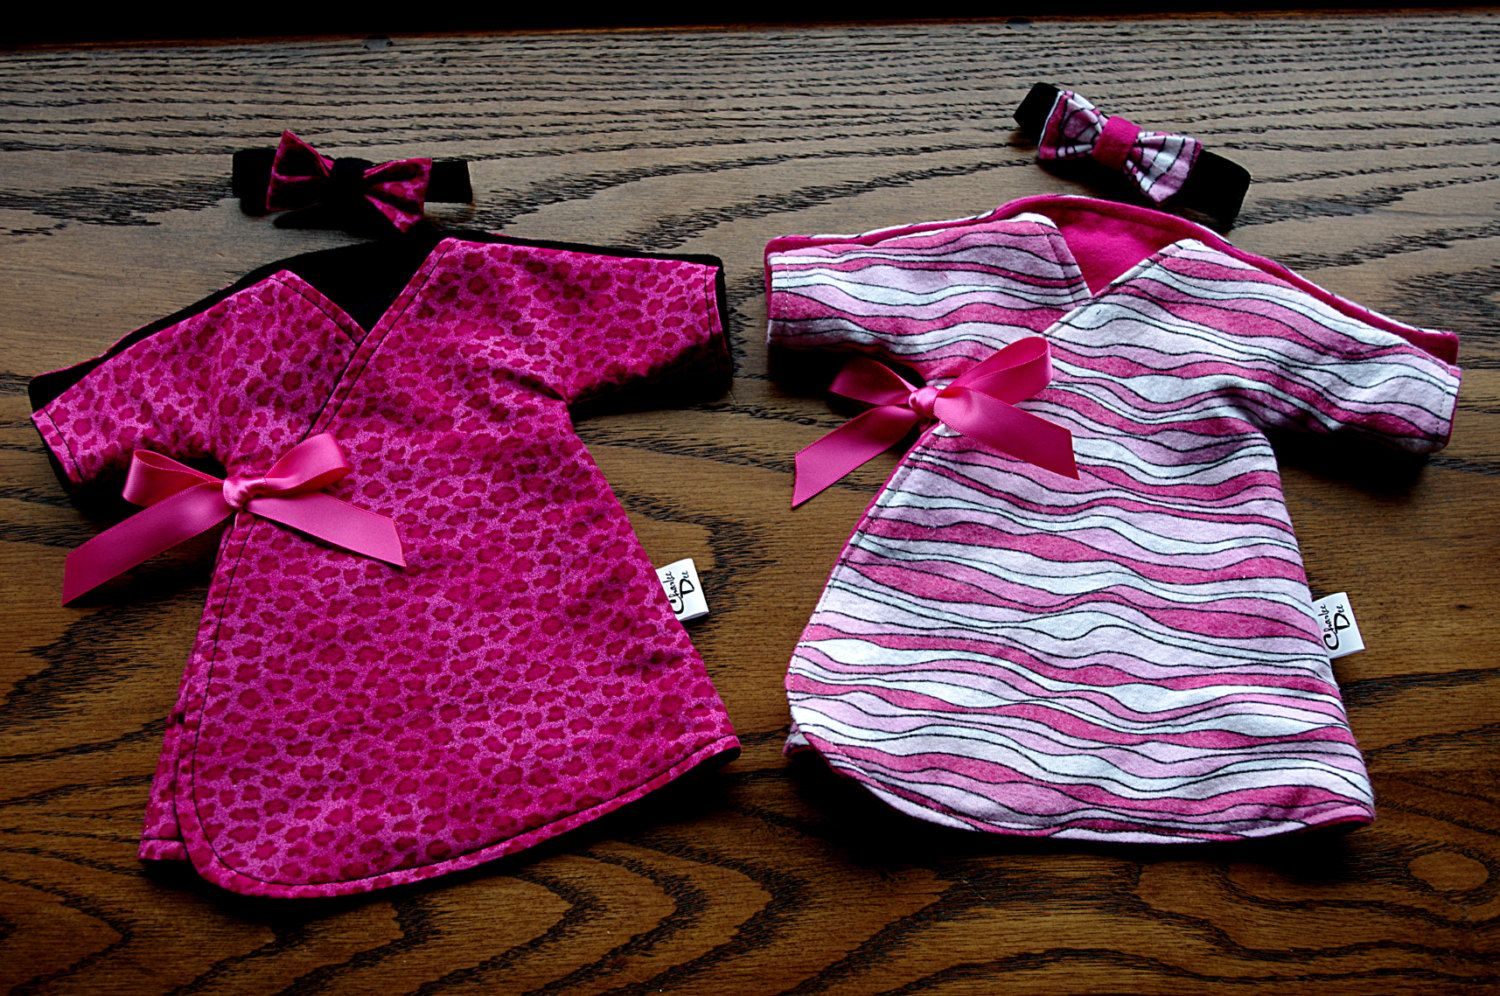 Micro Preemie NICU Gown // Fits 1.5 - 2.5lbs // Free Shipping in North America. $13.00, via Etsy.